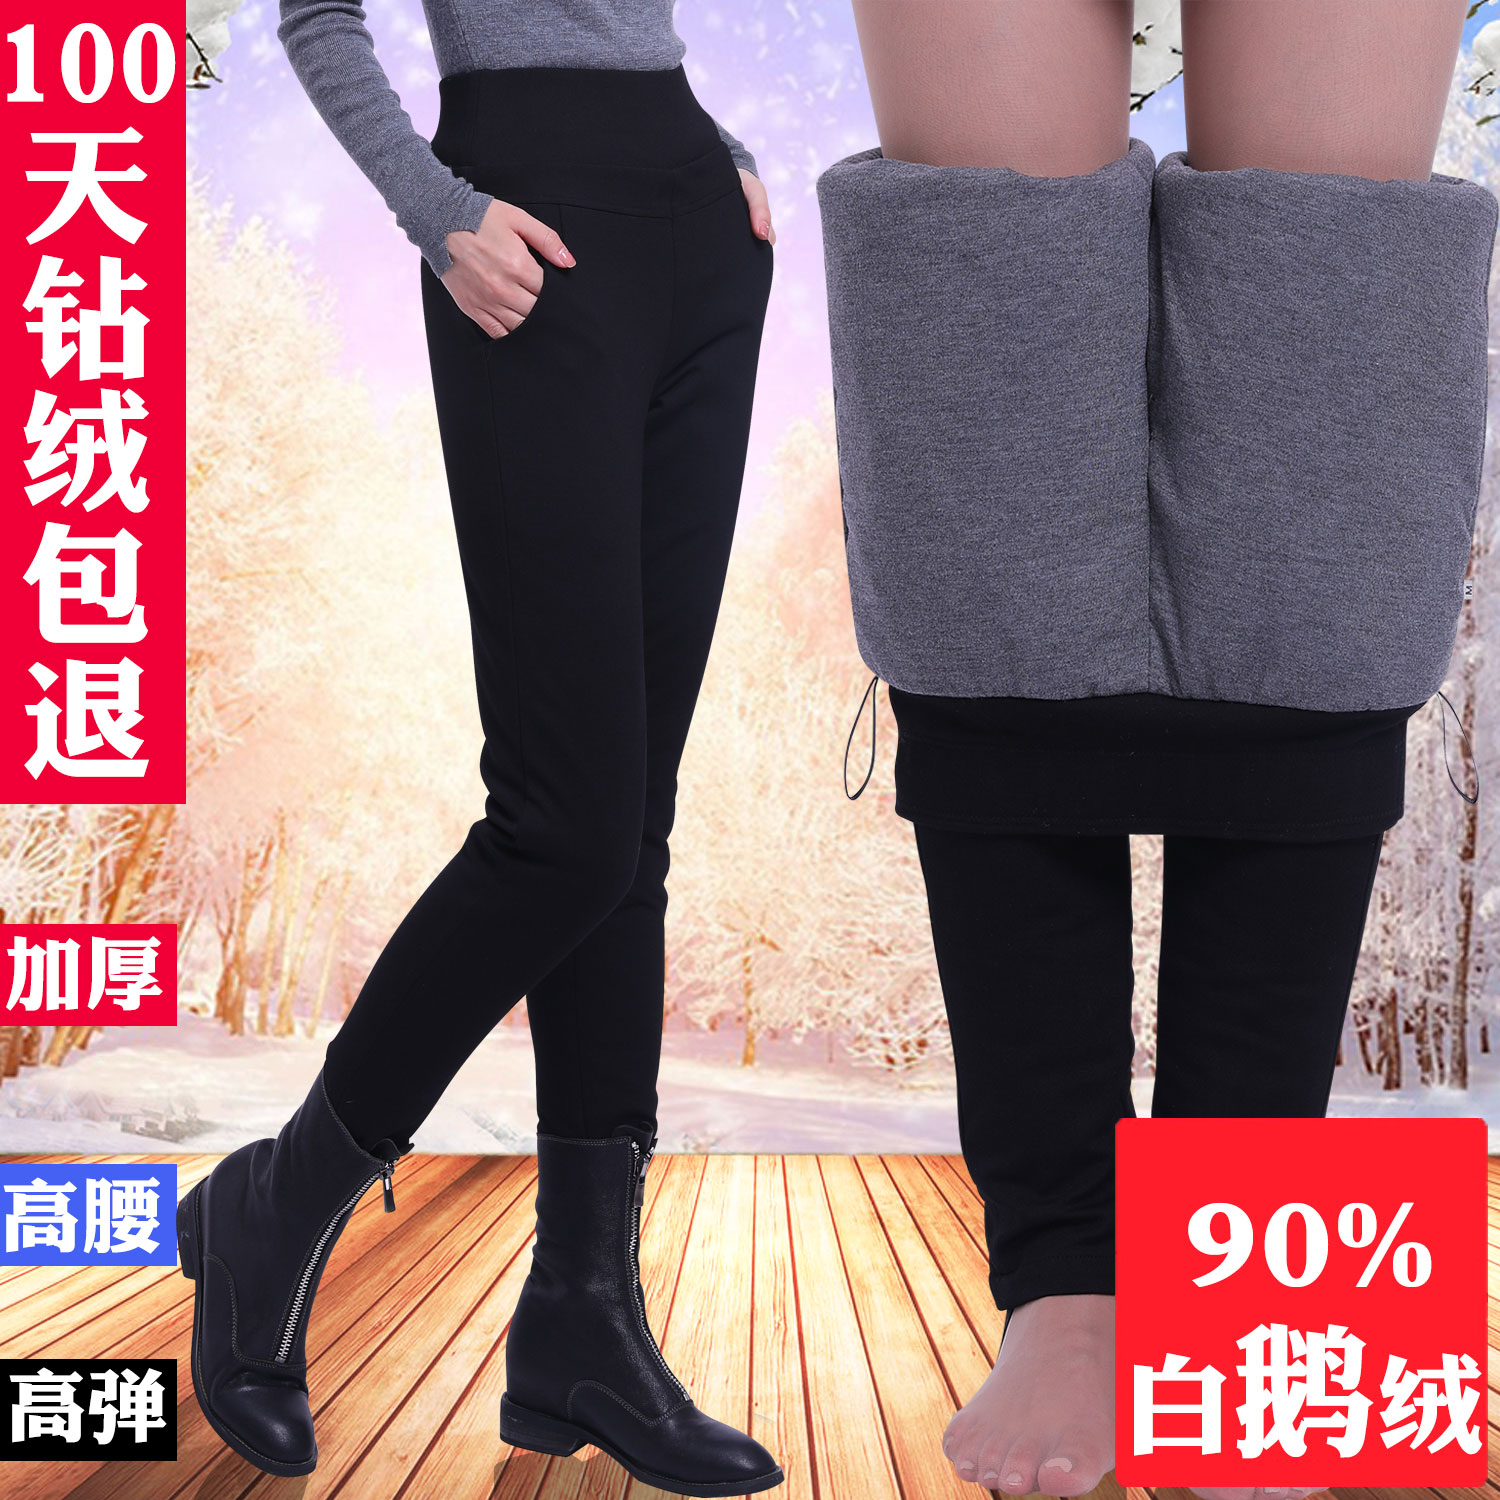 Harpy girl also down pants women wear white velvet sheep pants cotton pants high waist shows thin and thick cotton lining